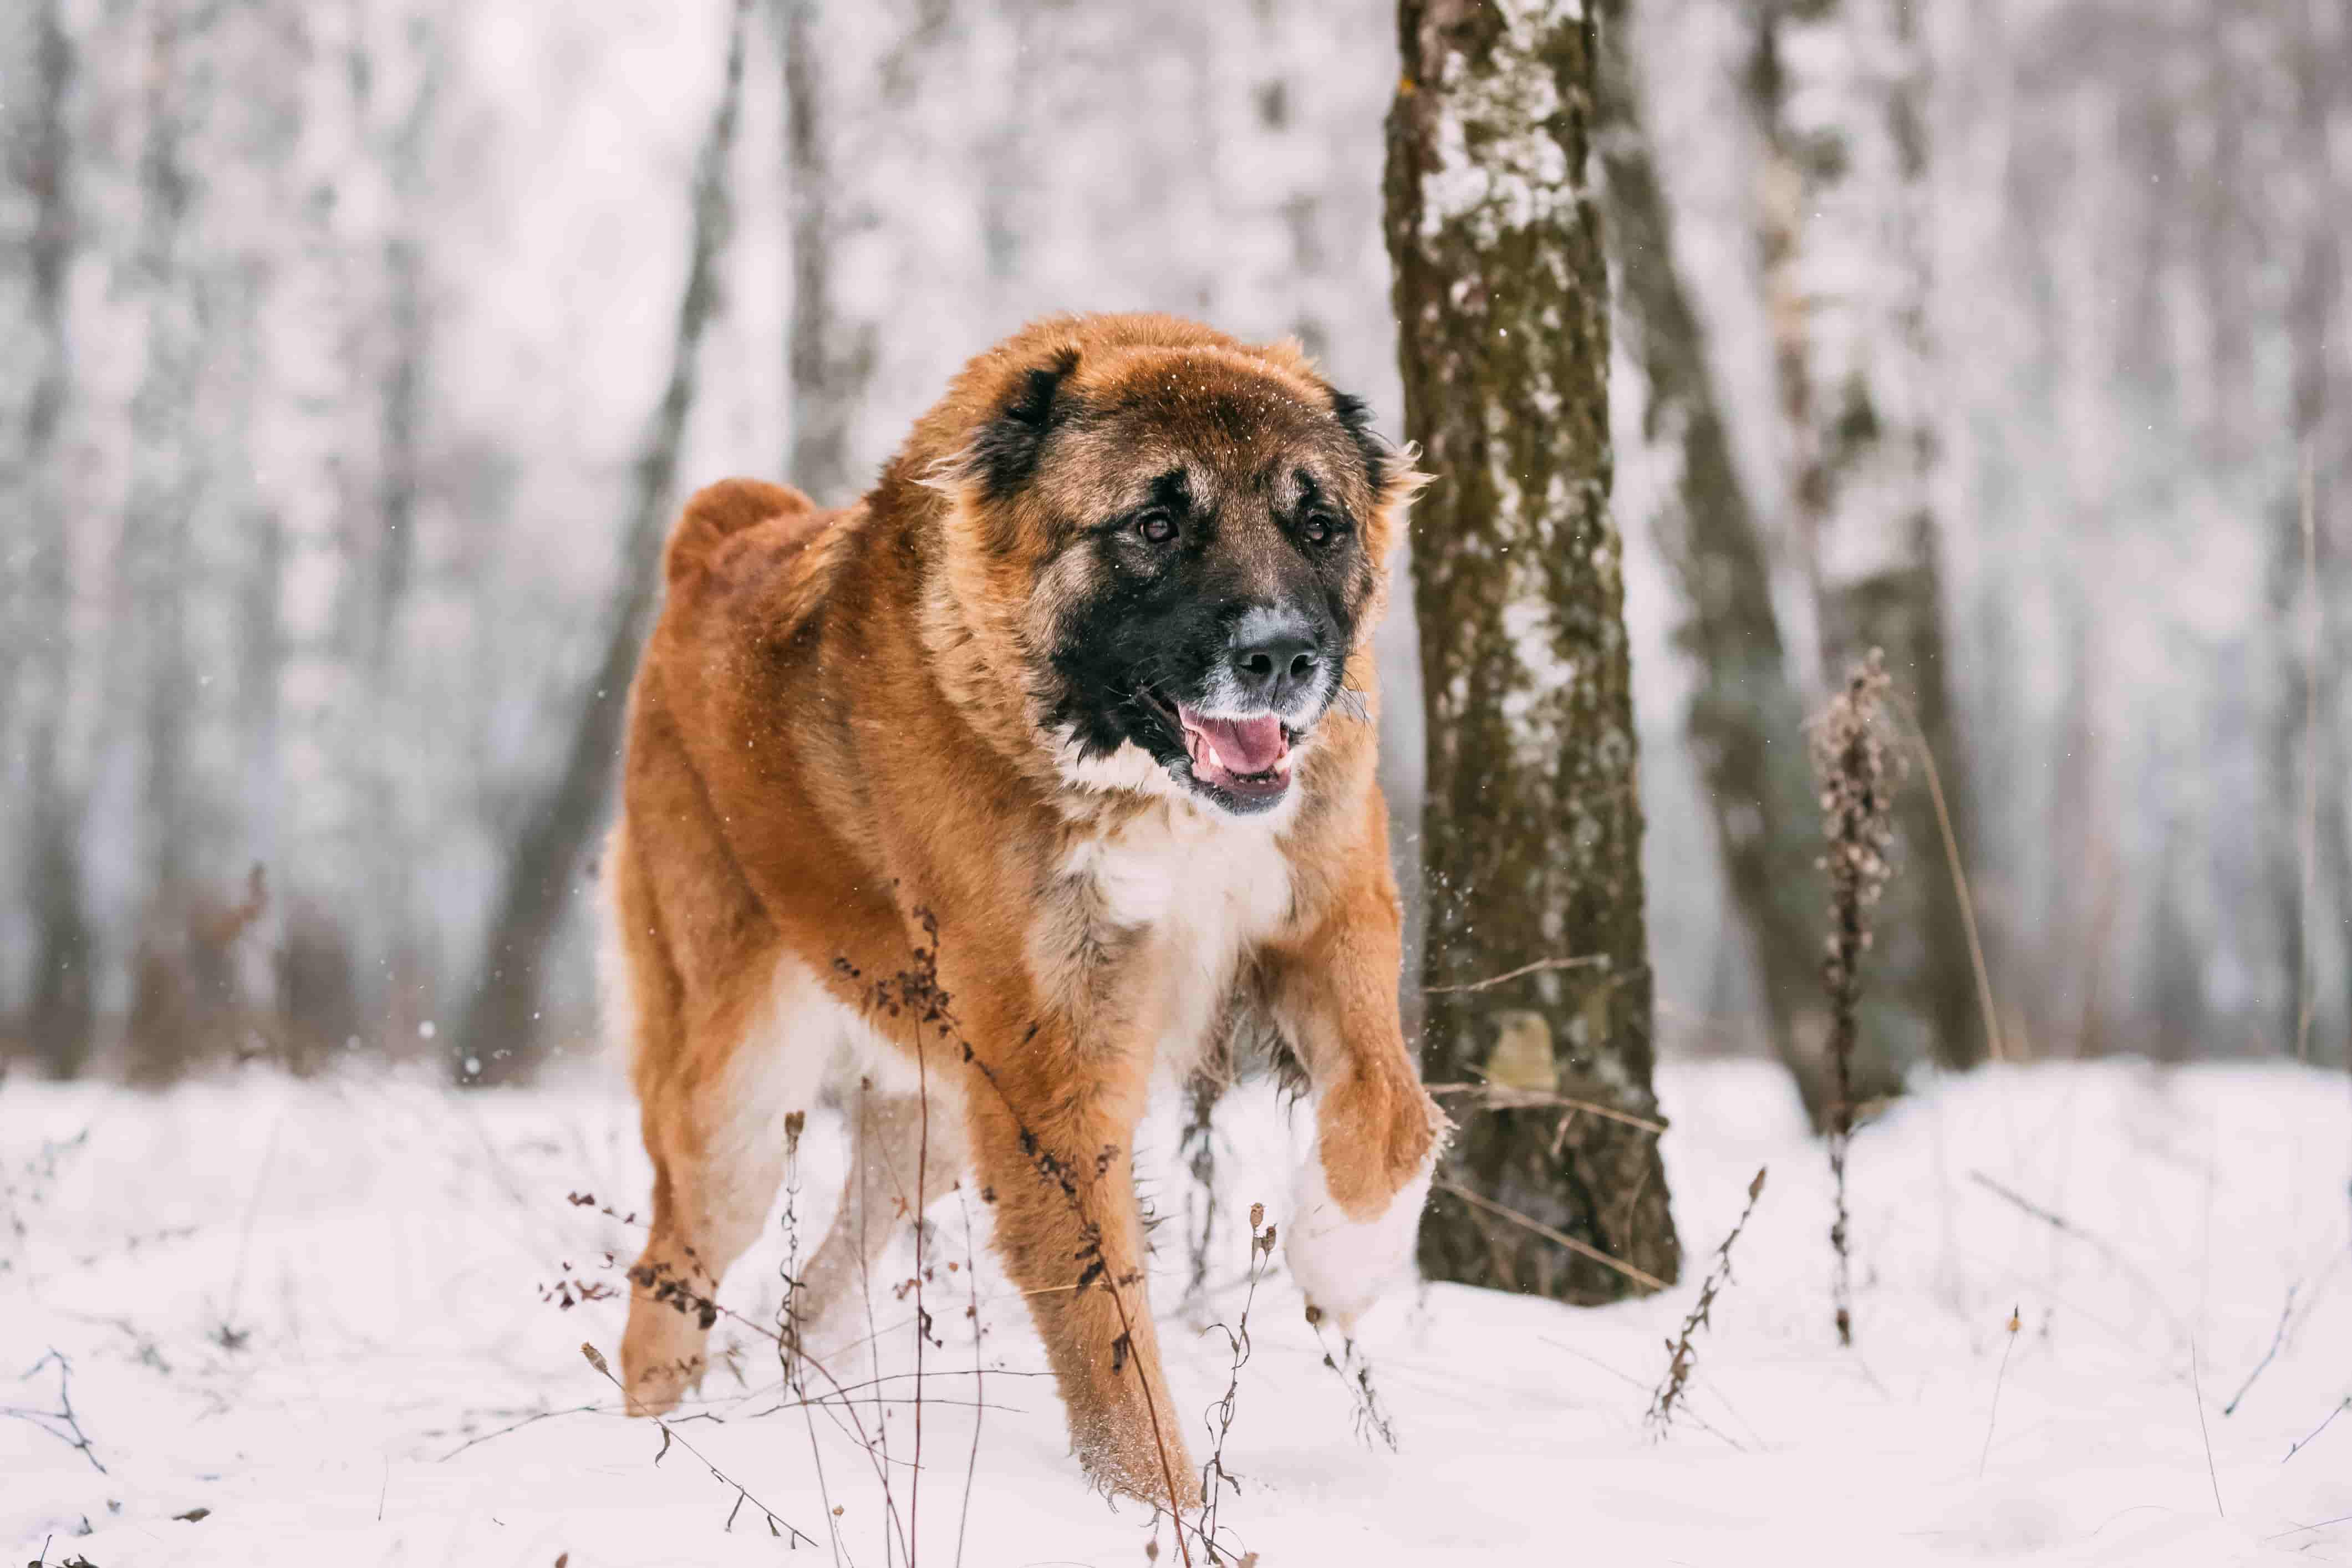 caucasian-shepherd-dog-running-outdoor-in-snowy